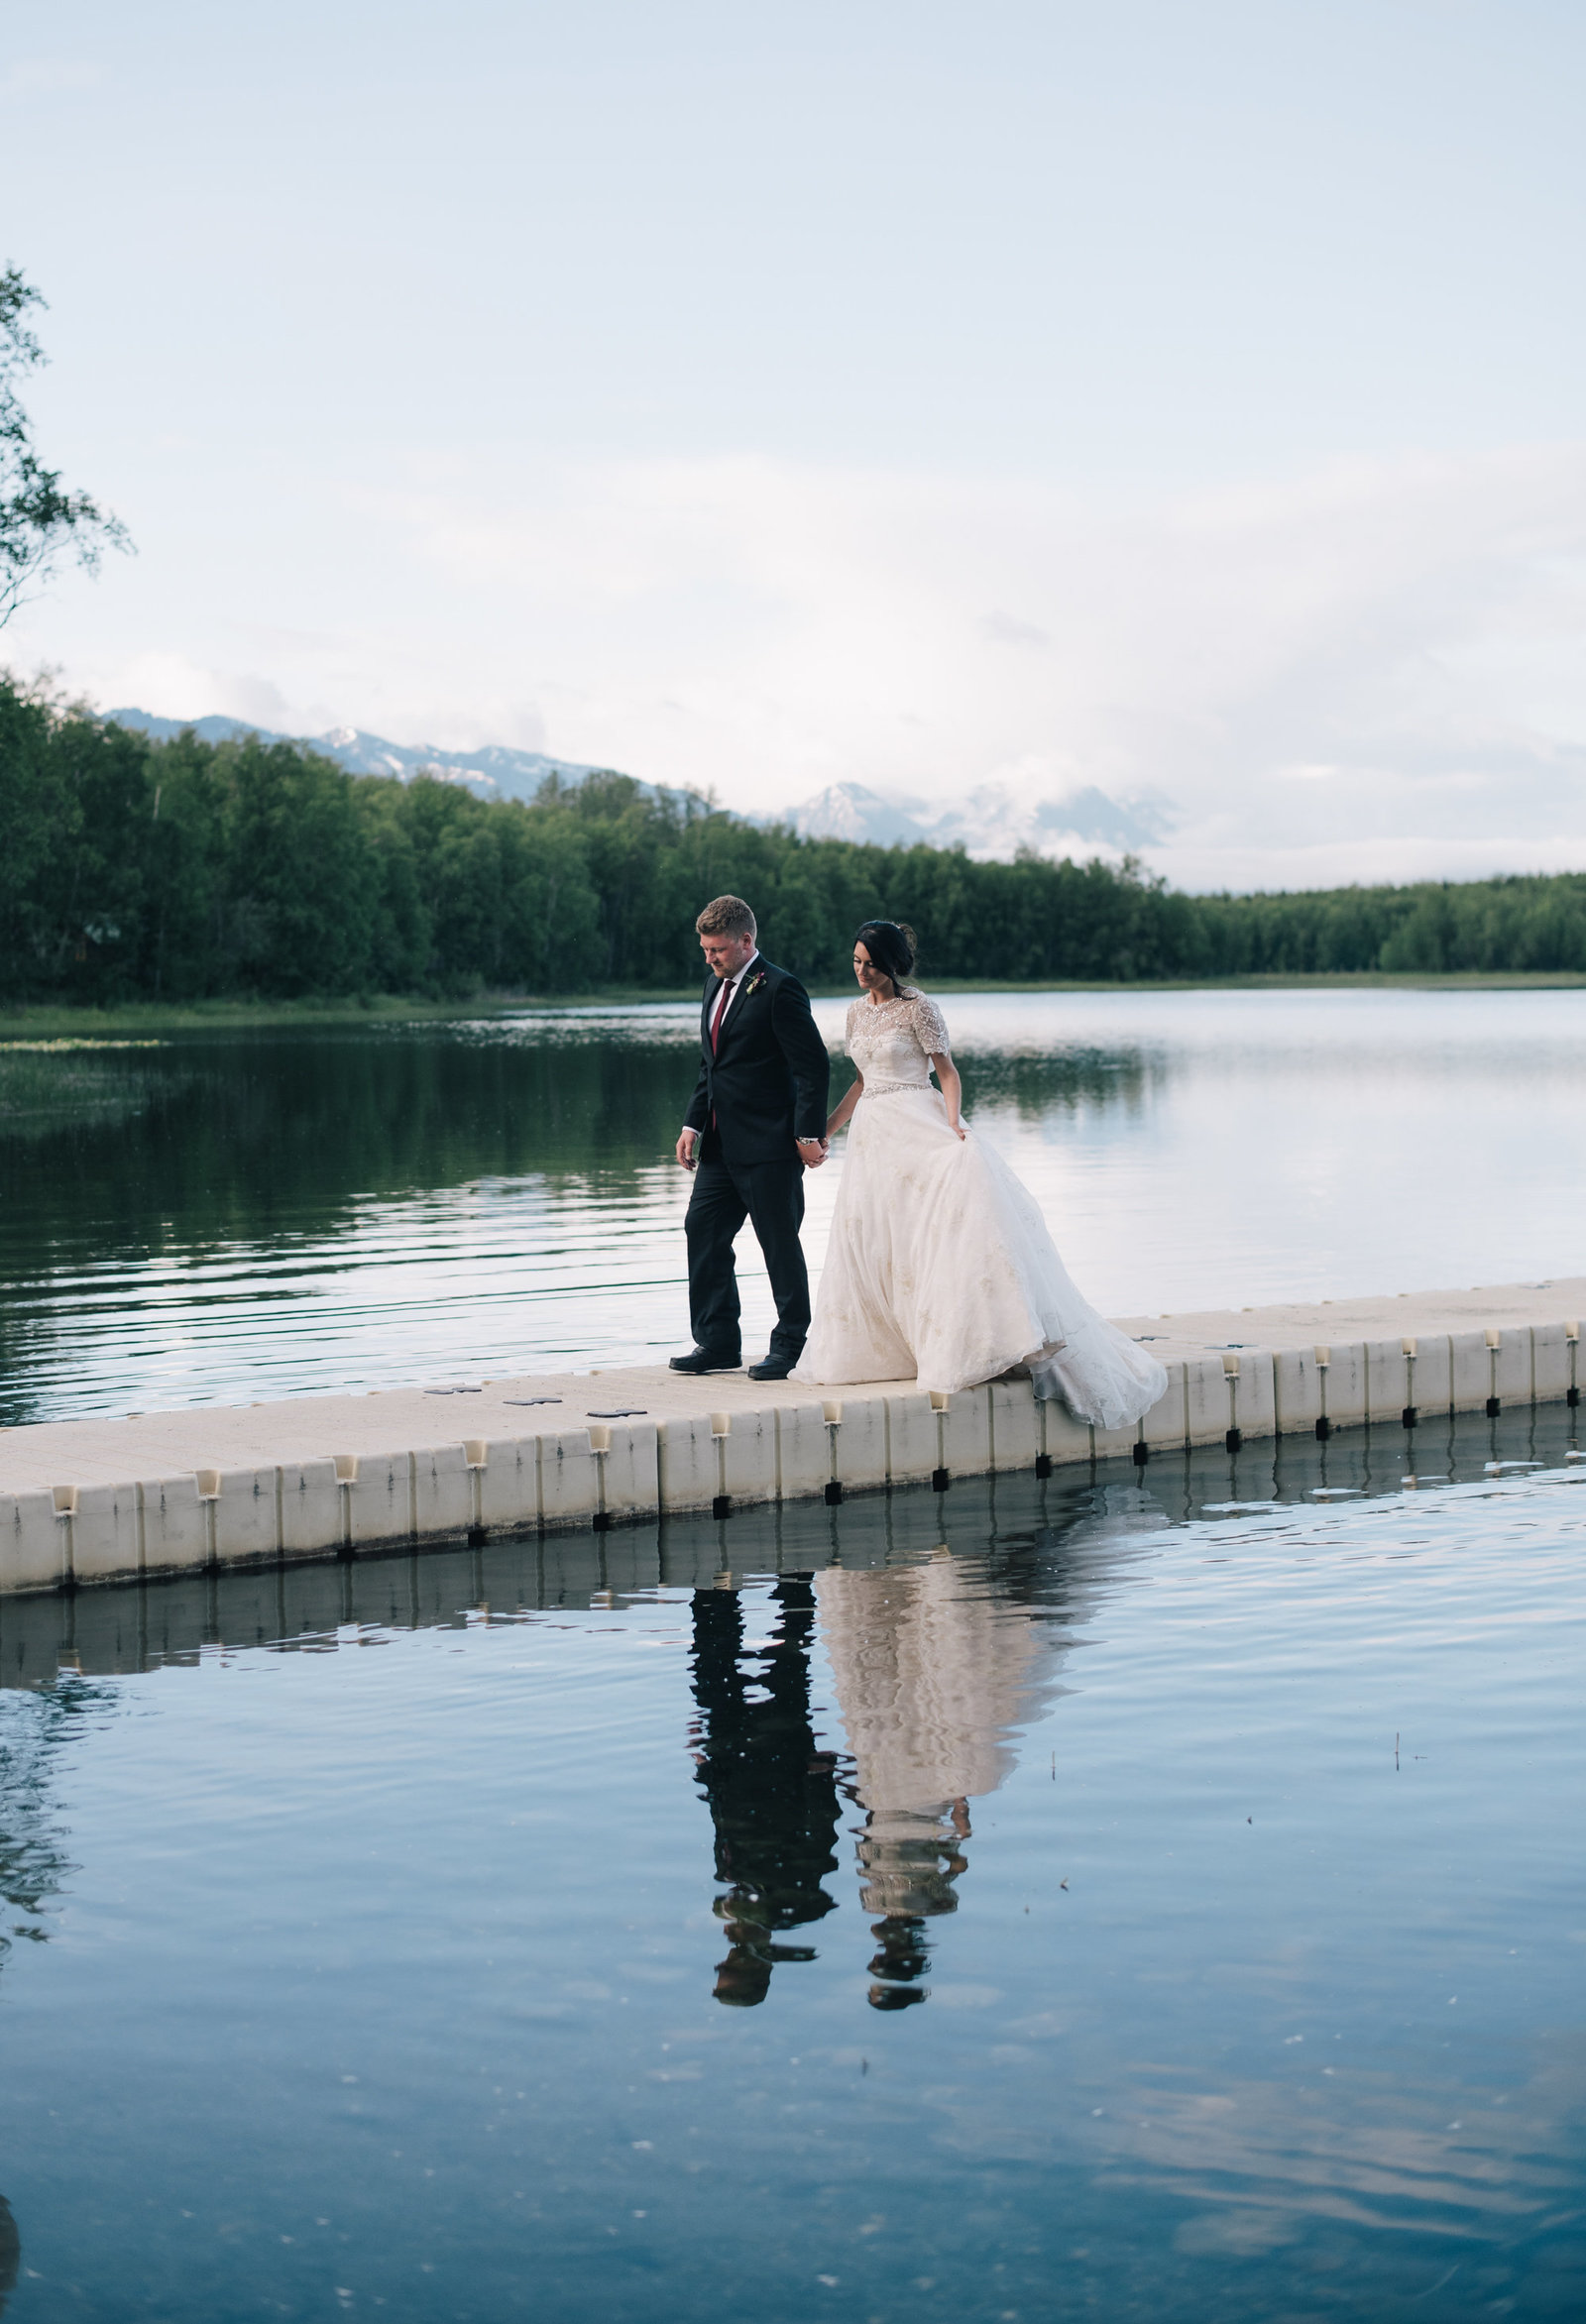 031_Erica Rose Photography_Anchorage Wedding Photographer